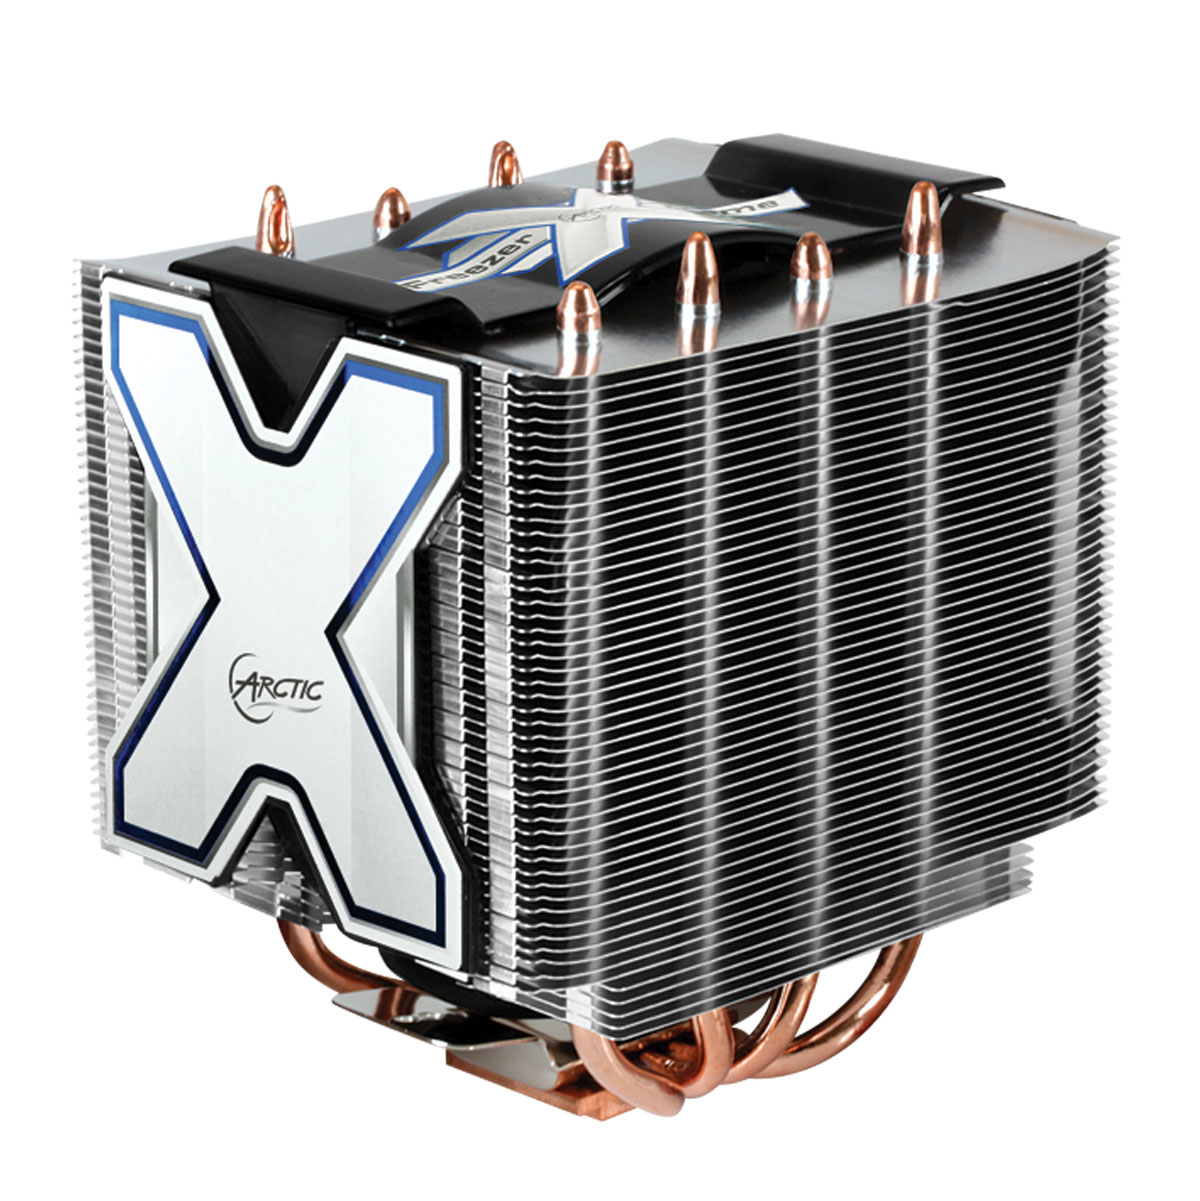 ARCTIC UCACO-P0900-CSB01 FREEZER XTREME (REV. 2) - MULTI-COMPATIBLE TWIN TOWER CPU COOLER